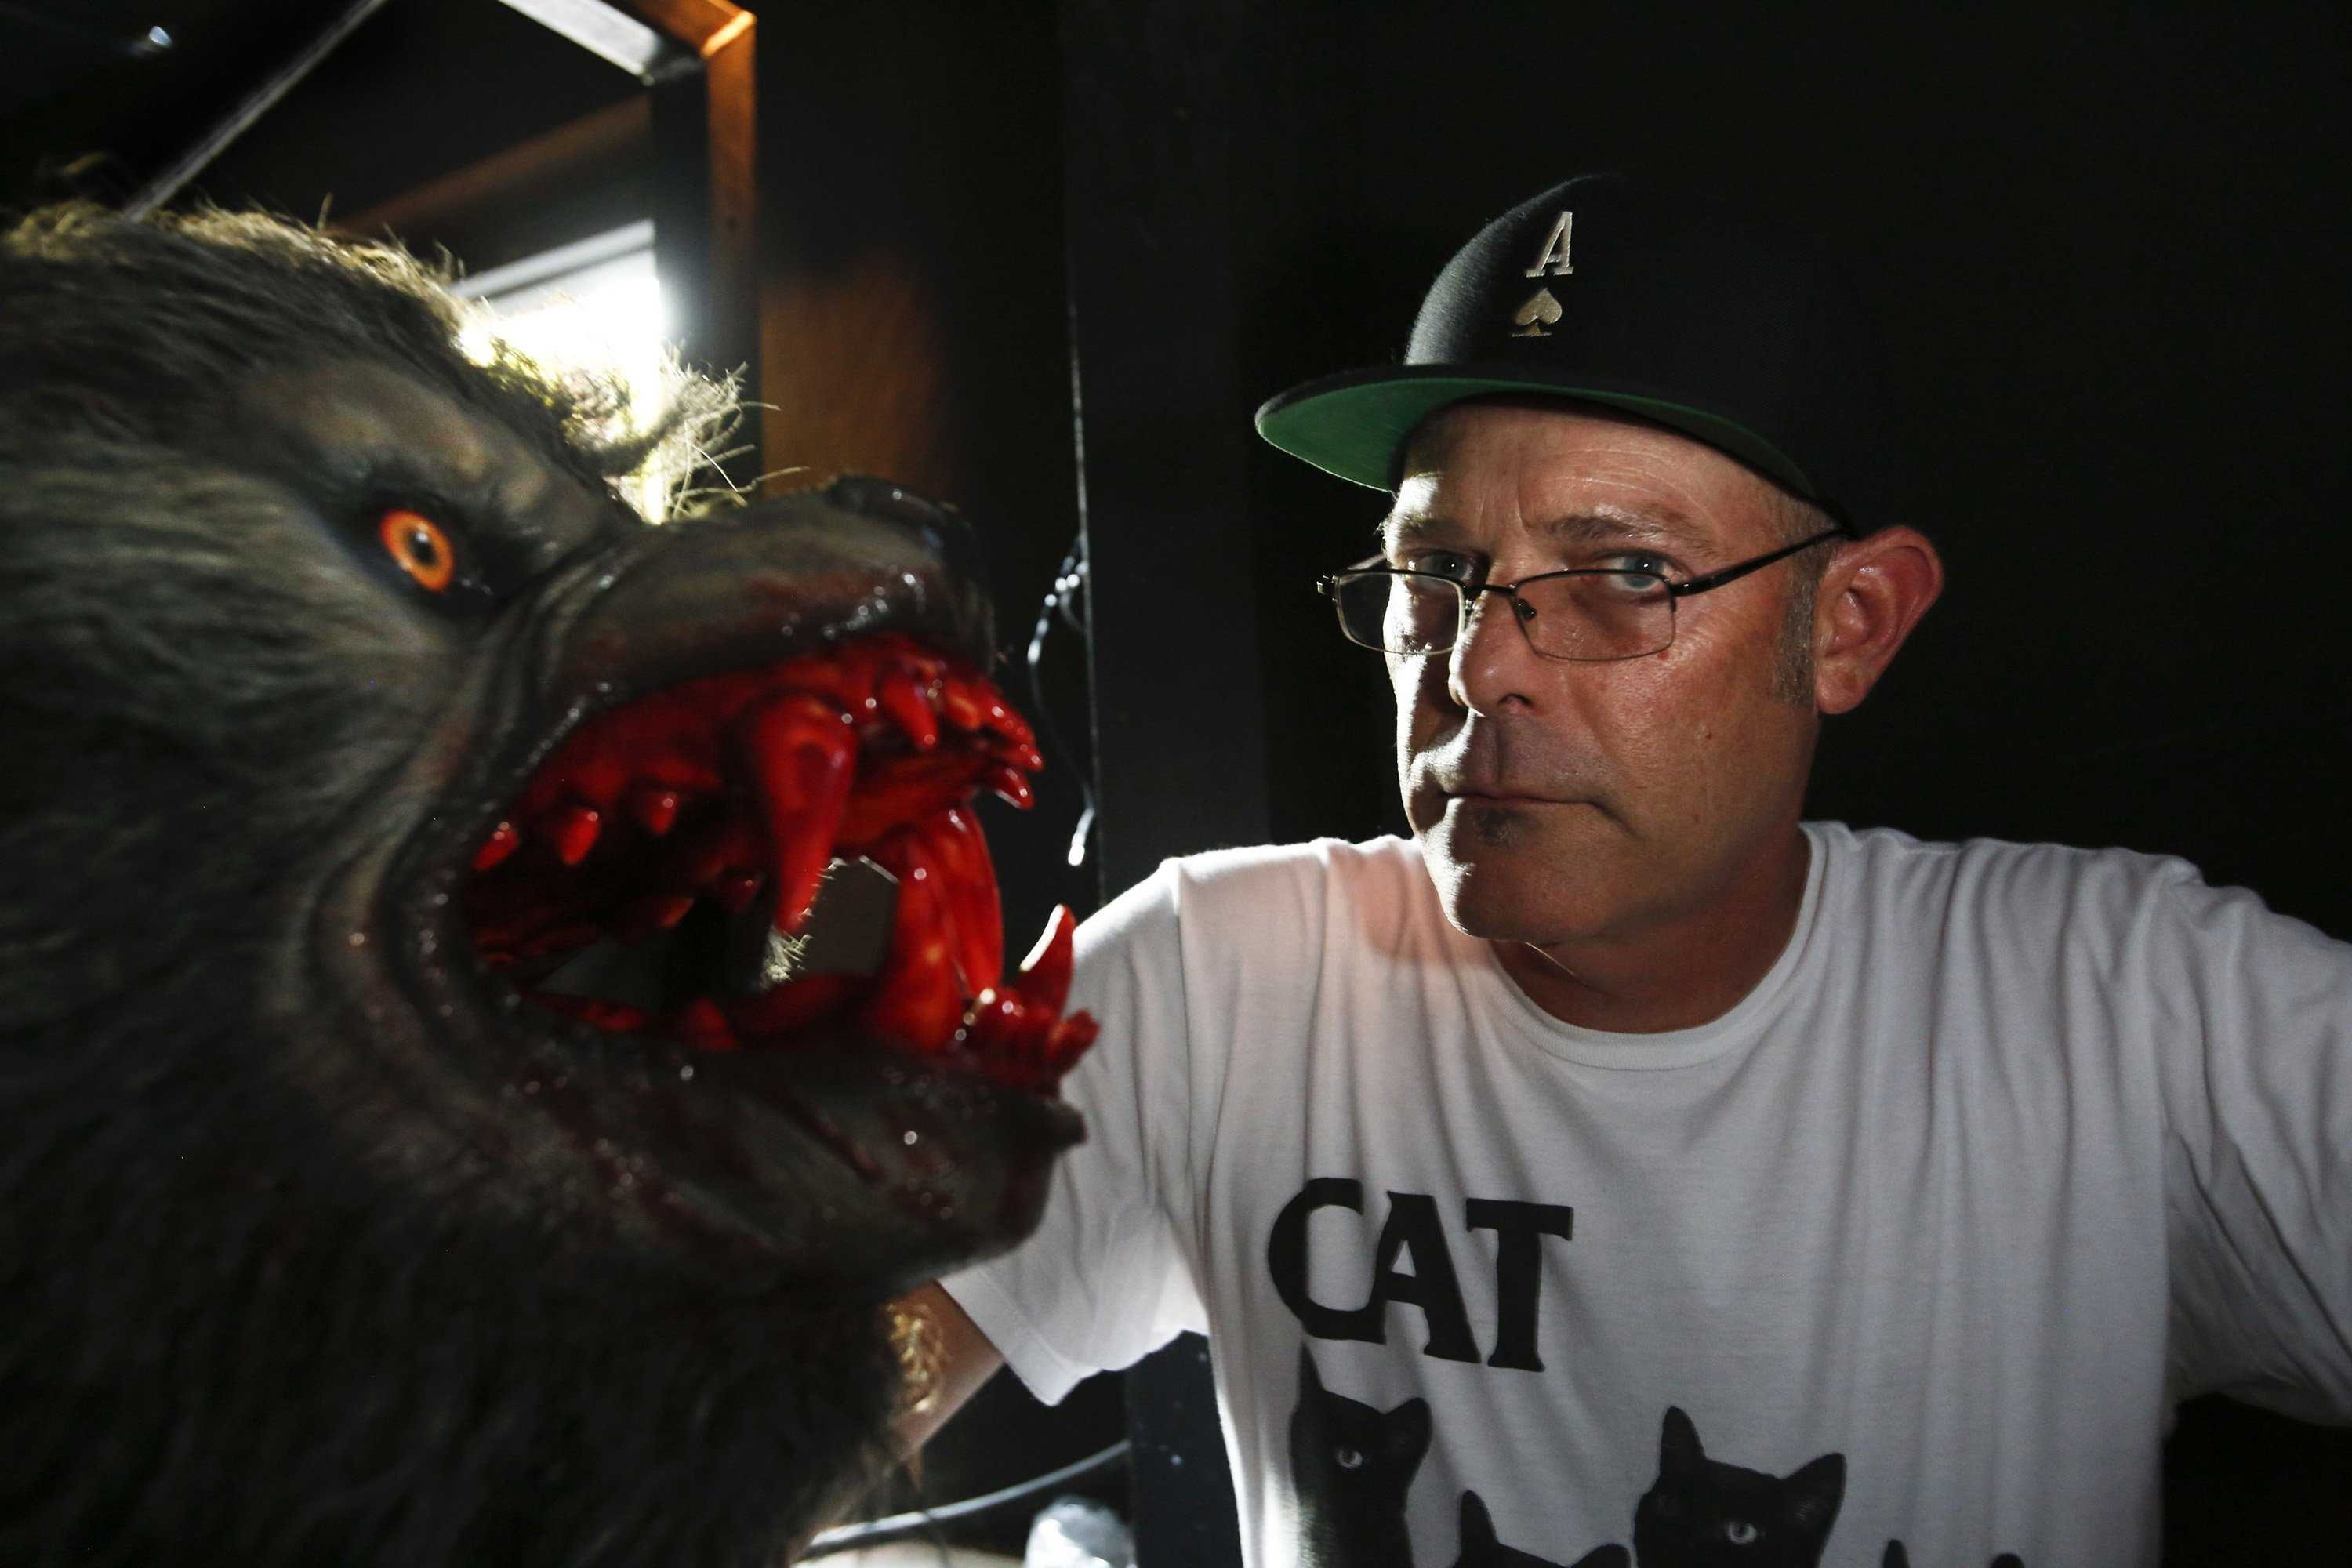 John Murdy, executive producer of Halloween Horror Nights at Universal Studios Hollywood, with one of many werewolves during a tour of the mazes that are being set up around the theme of the horror movie